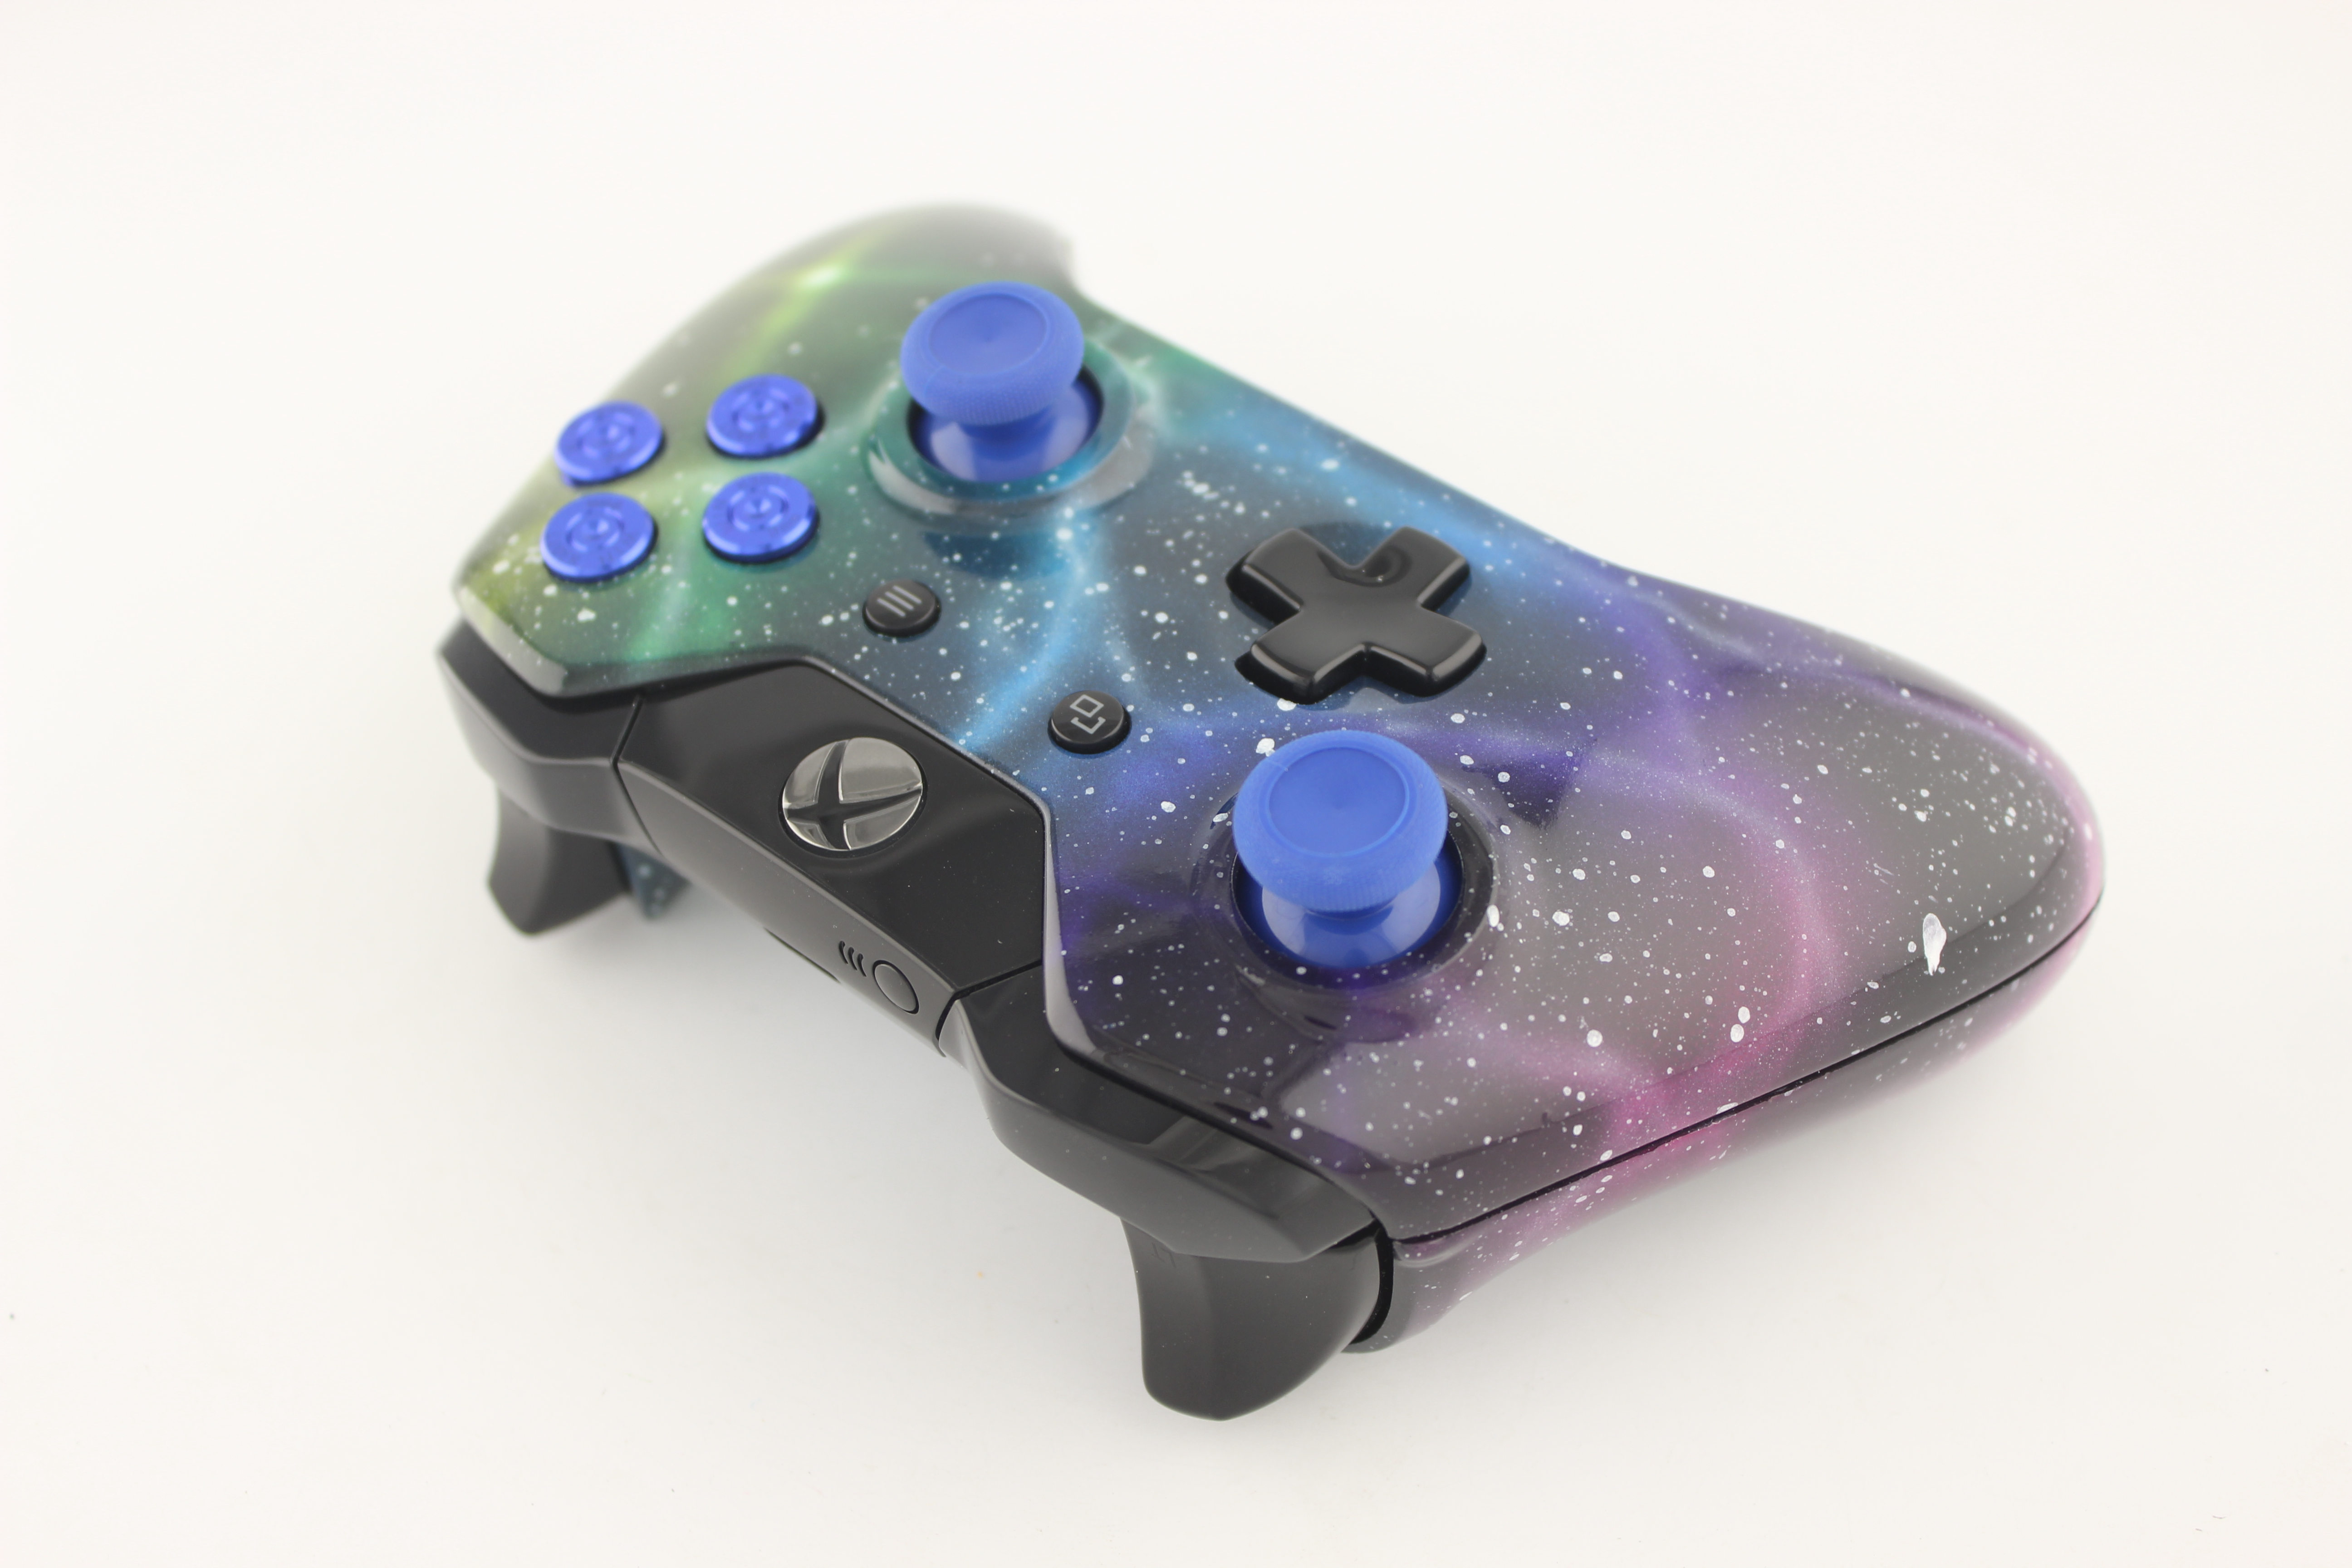 Nebula Xbox One Controller with Blue Bullet Buttons and Blue